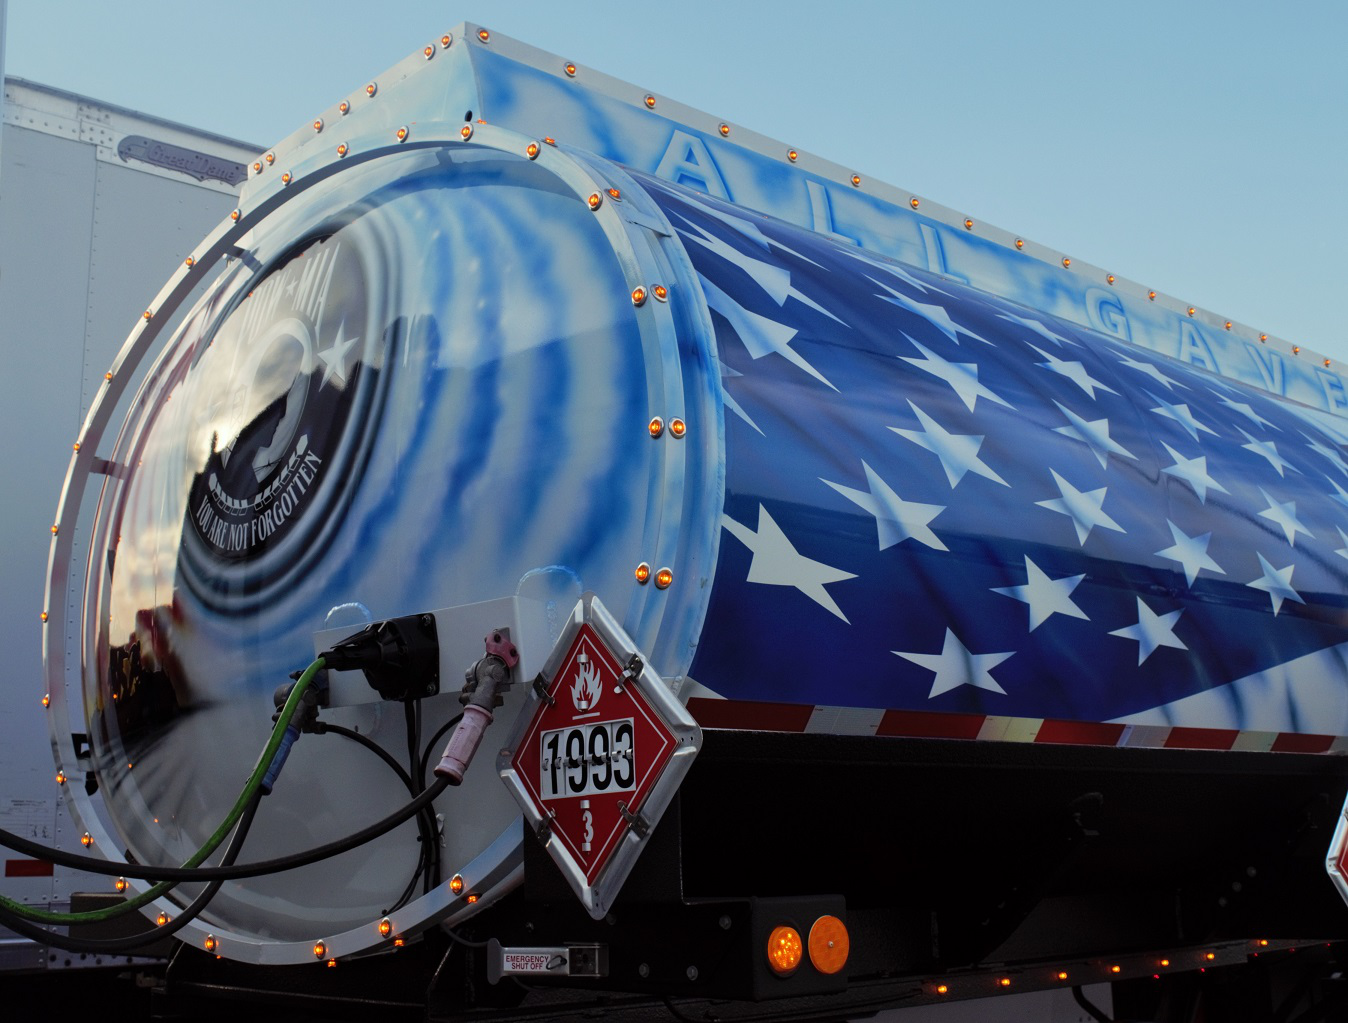 The tanker's front is dedicated to U.S. soldiers that never came back from foreign wars, showing the POW-MIA isignia.